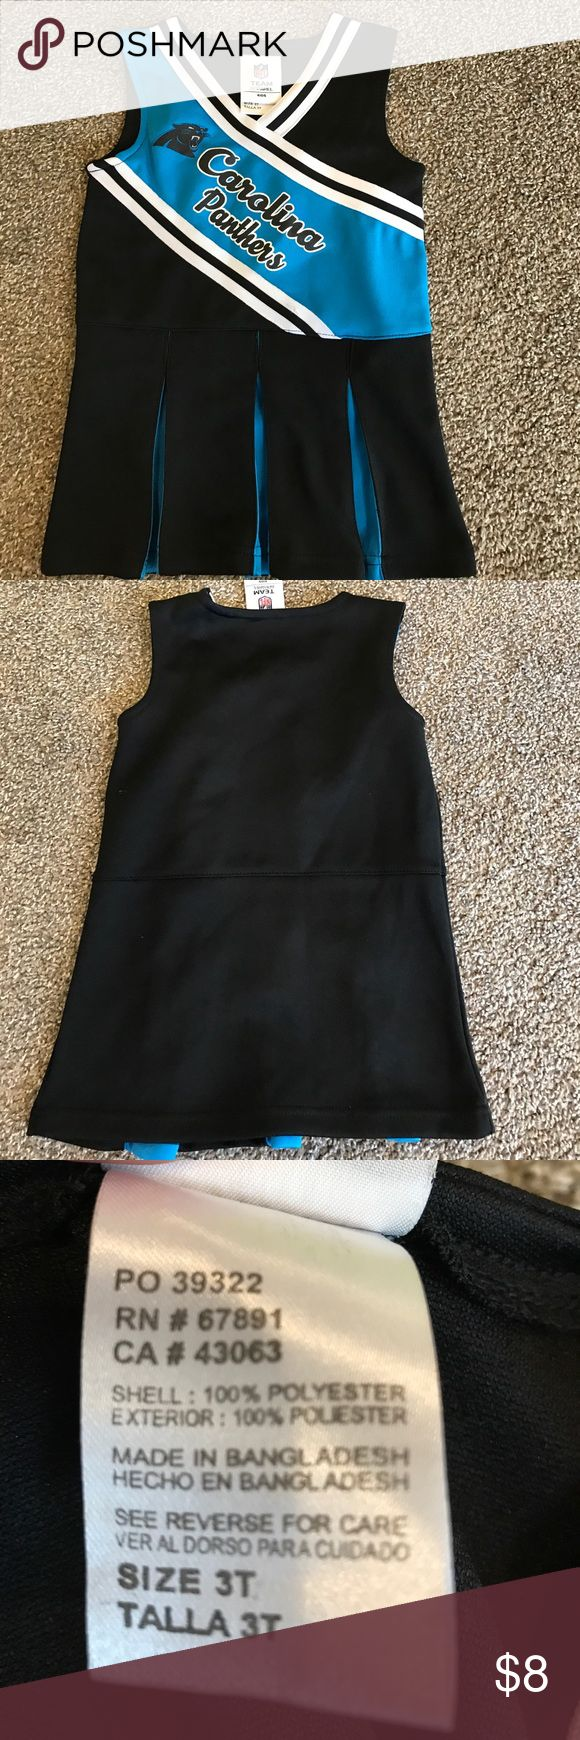 3T Panthers cheerleader outfit Excellent condition, worn maybe a couple of times Costumes